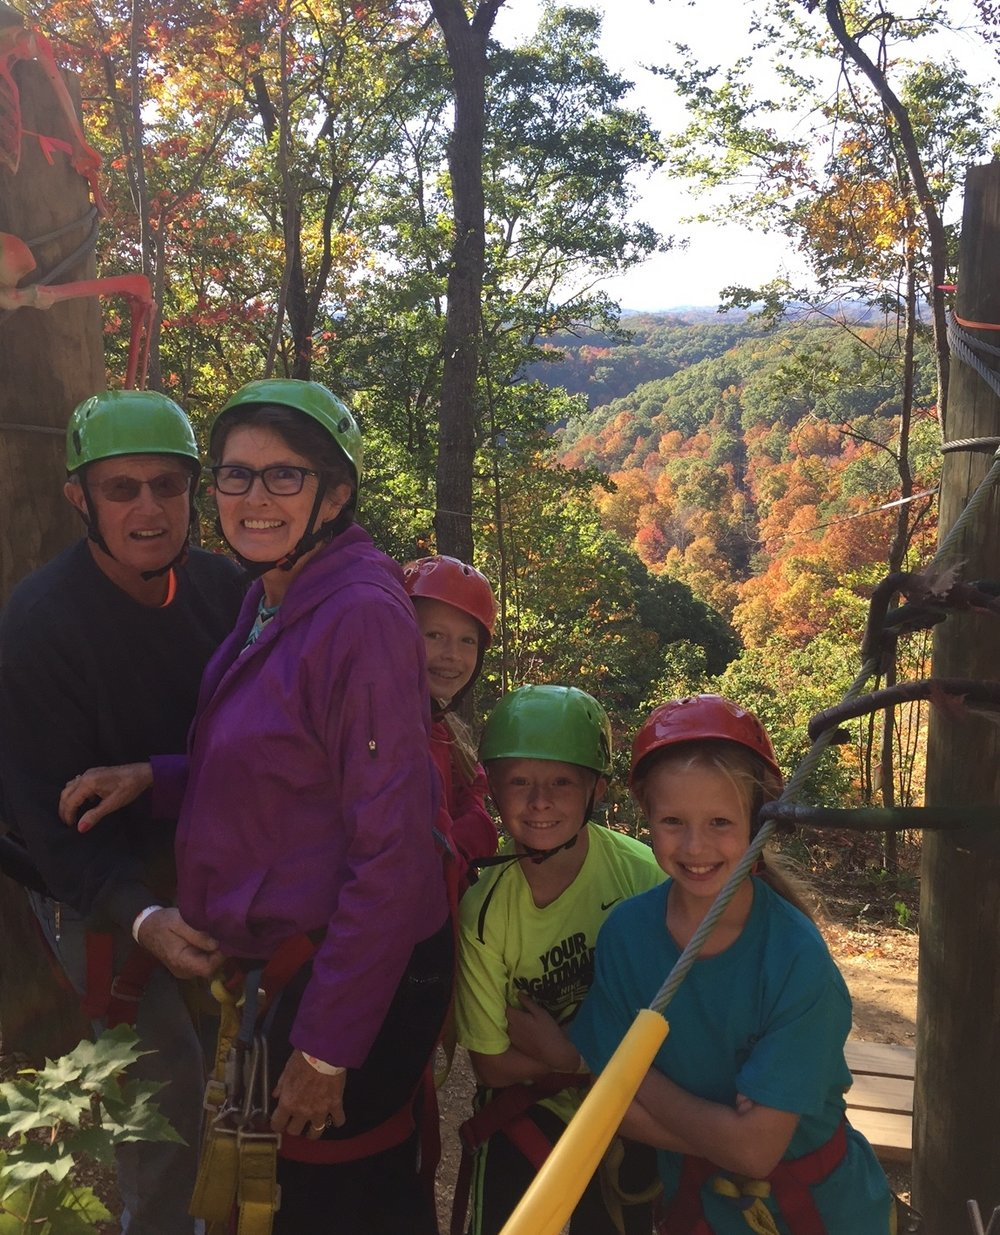 Zip lining at Off the Grid Mountain Adventures